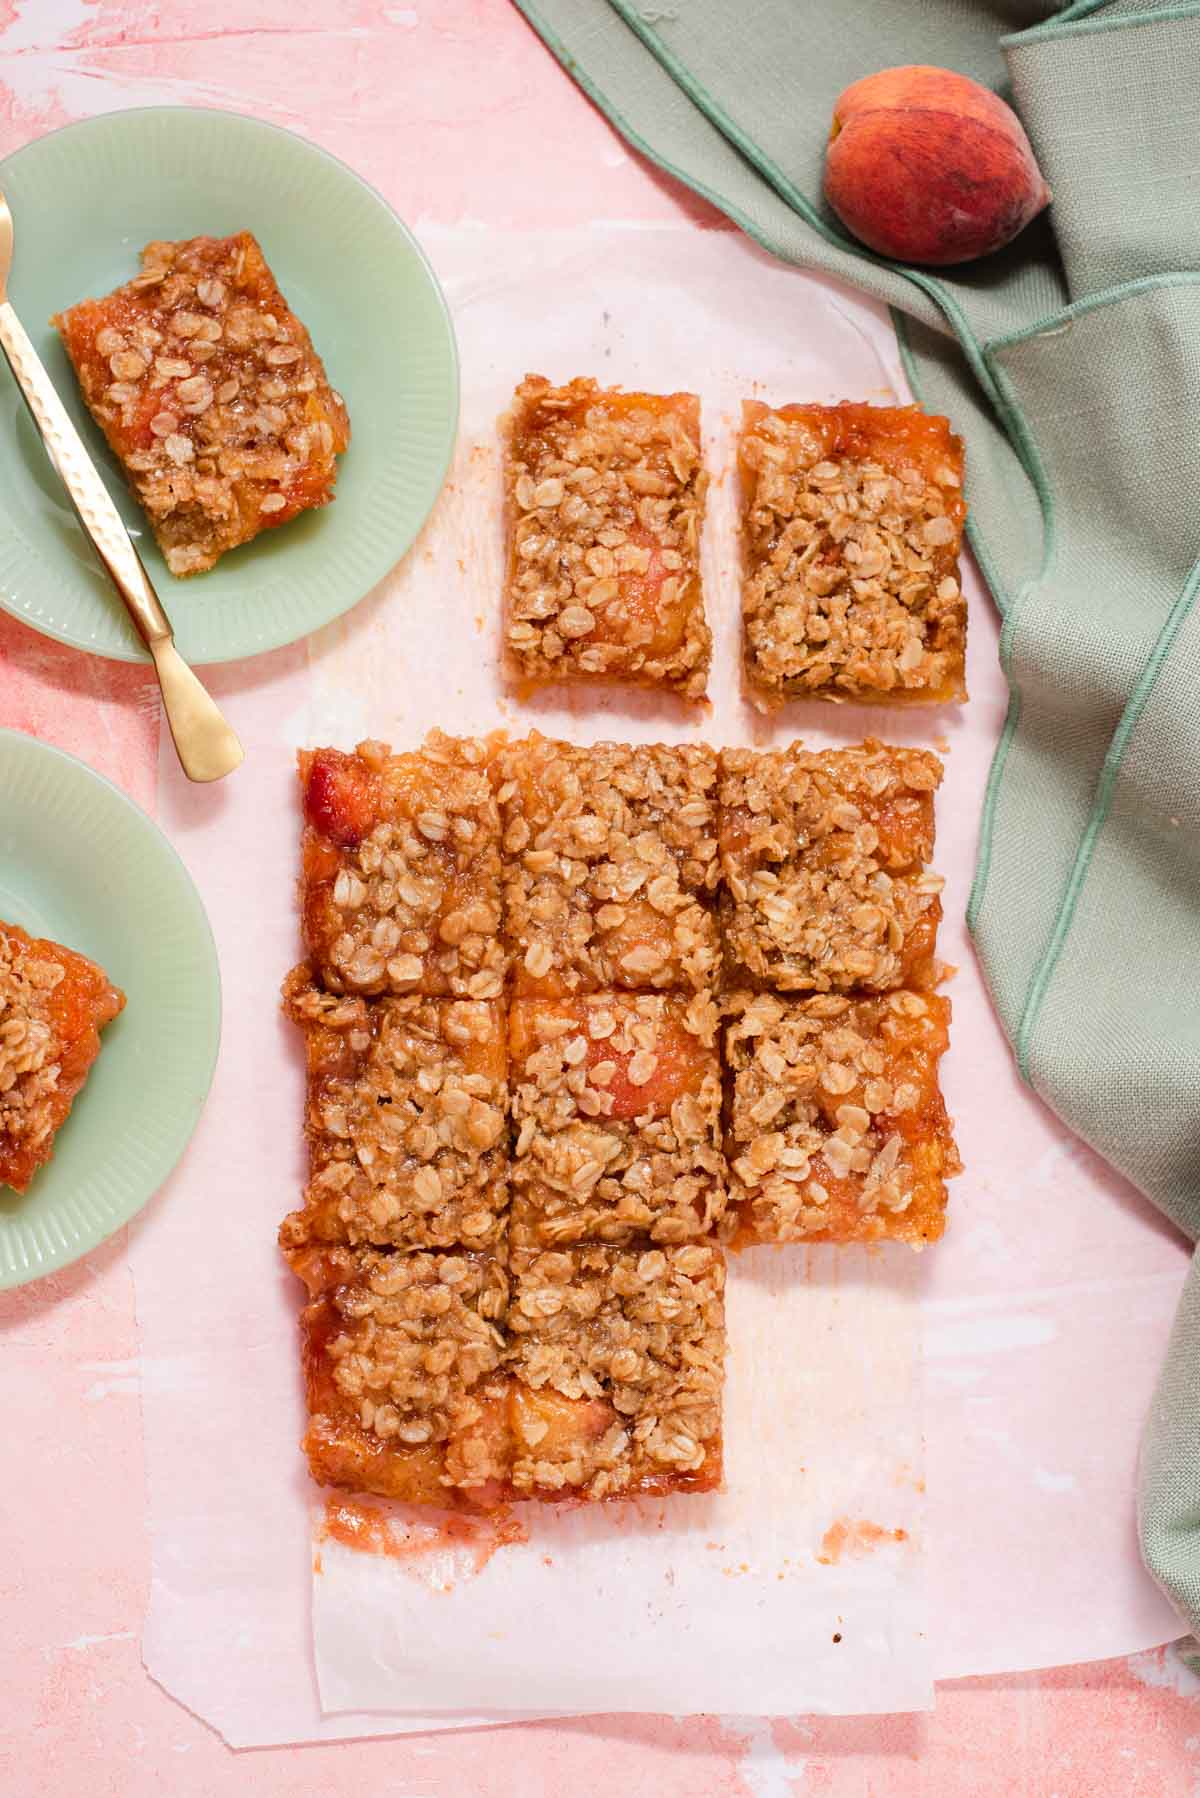 Overhead view of 12 peach bars sliced and scattered on a pink background and jadeite plates